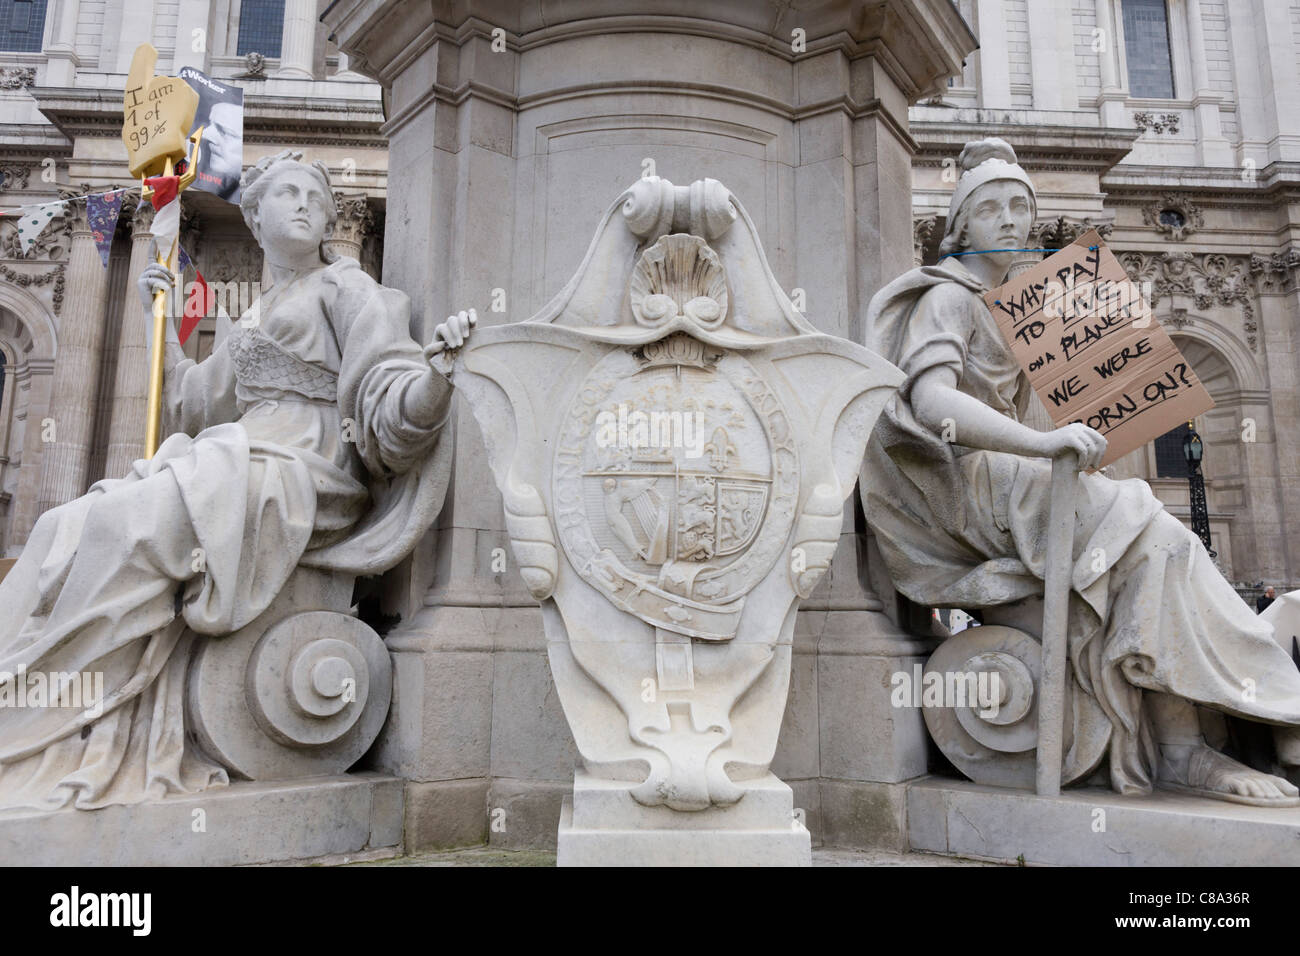 The Occupy London protest enters it's third day with the setting up of a tent city in St. Paul's Churchyard, - Stock Image